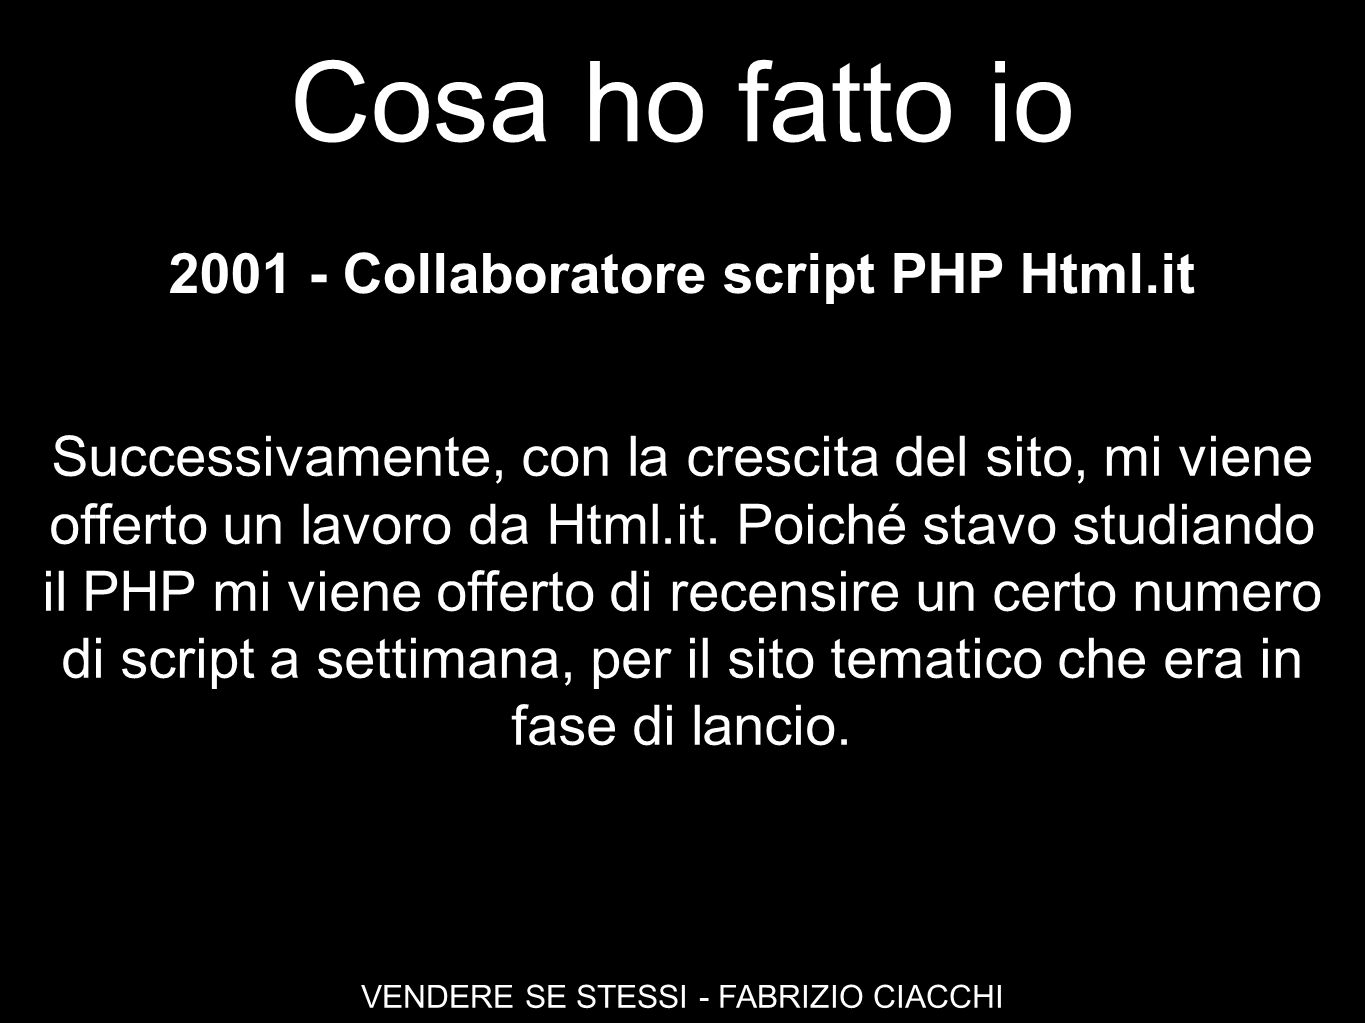 Collaboratore script PHP Html.it